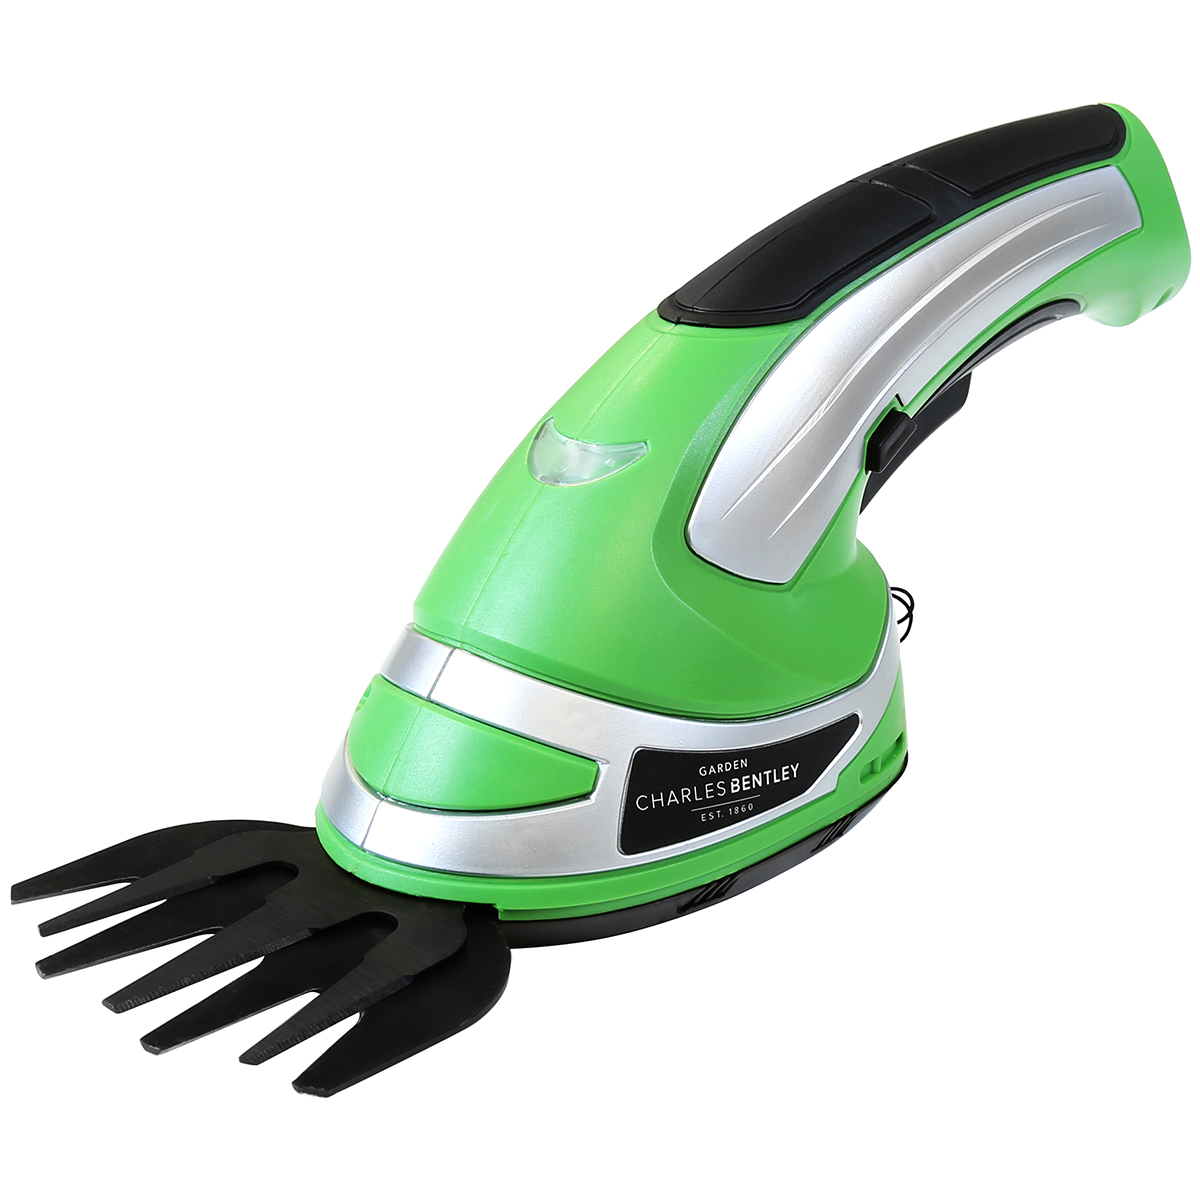 Charles bentley 3 6v cordless 2 in1 grass cutter hedge for Electric hand garden shears